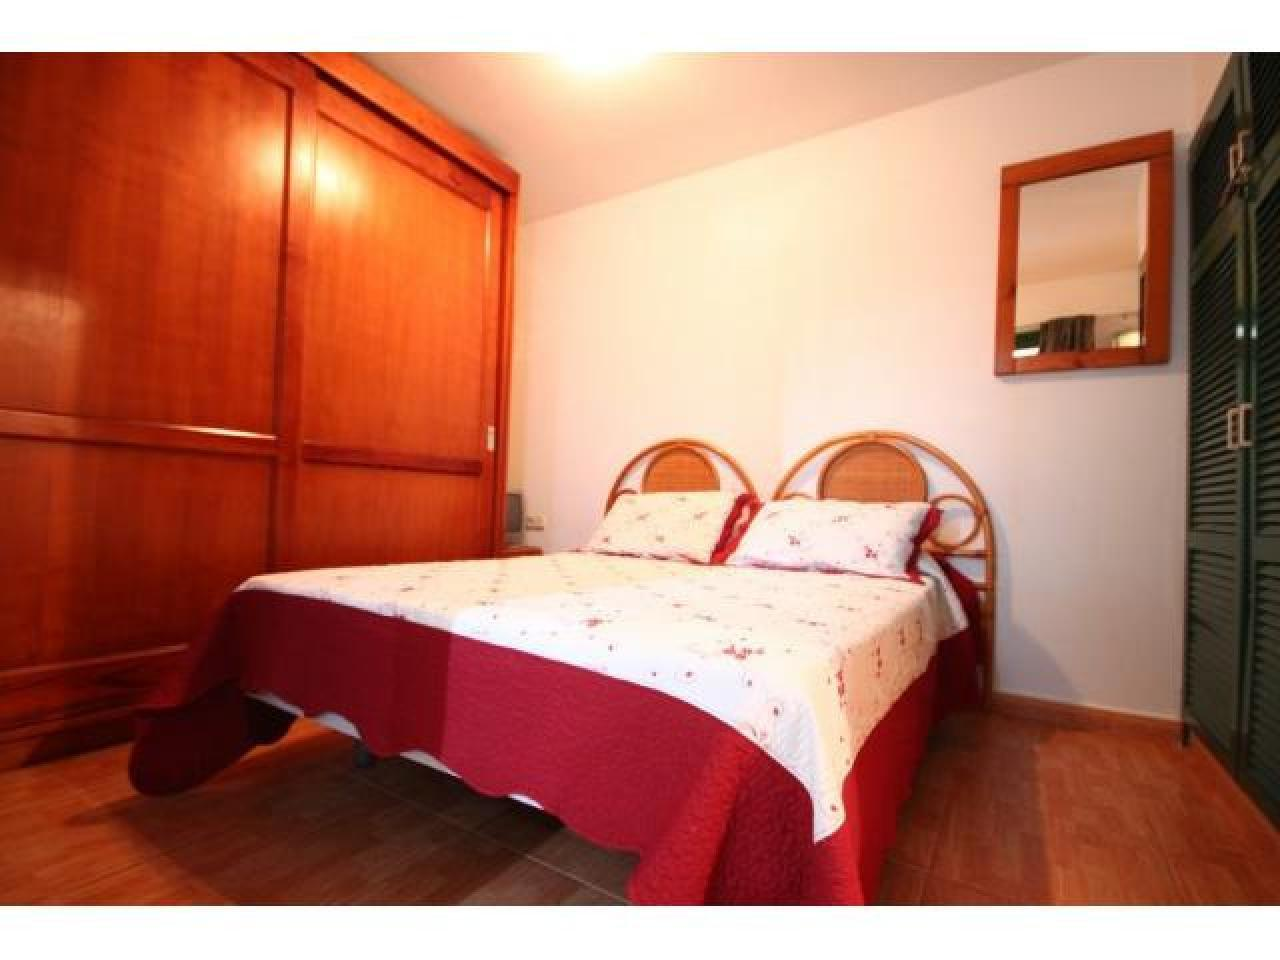 Apartment in Tenerife for sale » #373 - 3